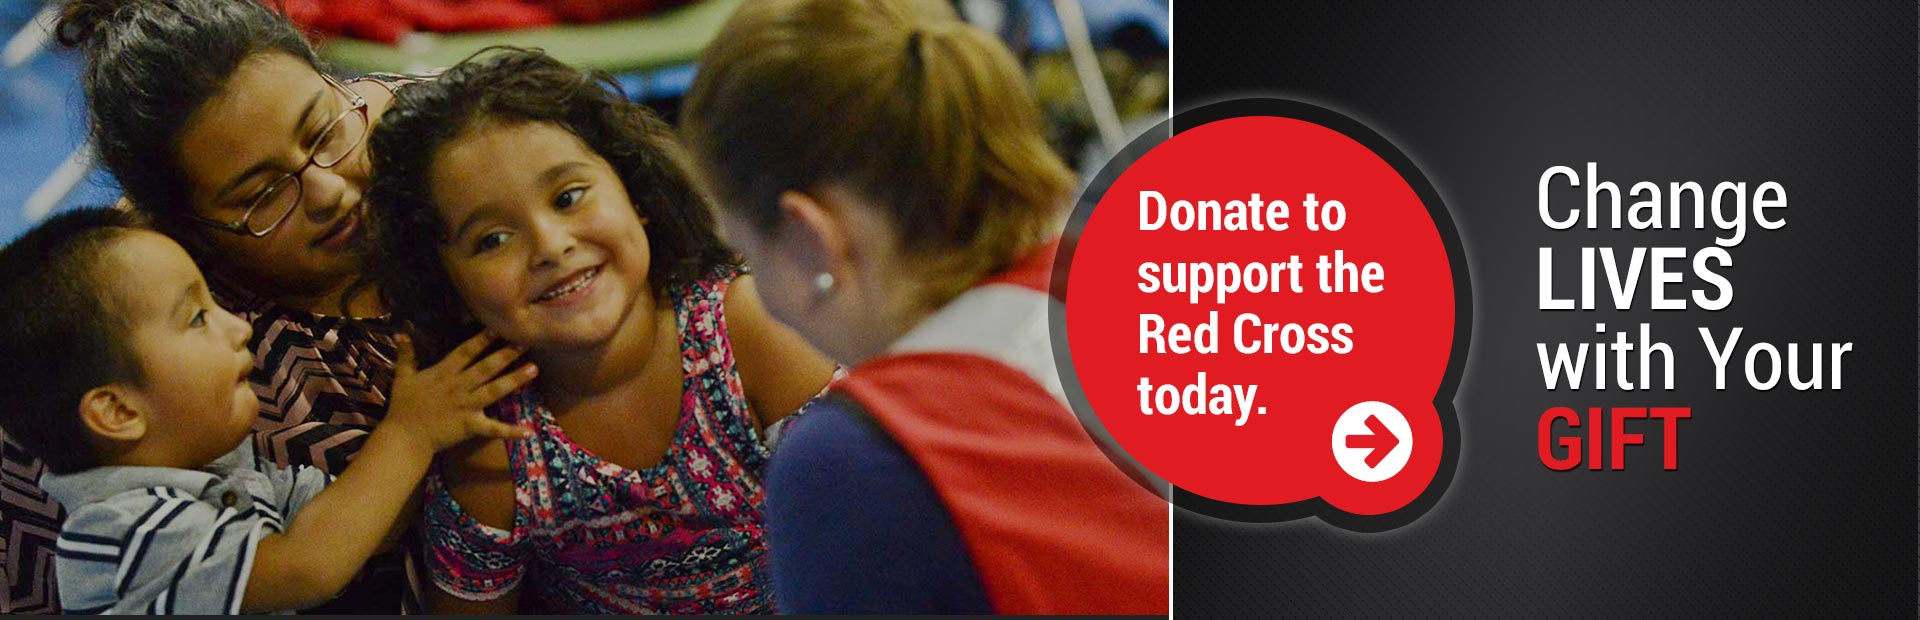 Change lives with your gift. Donate to support the Red Cross today.